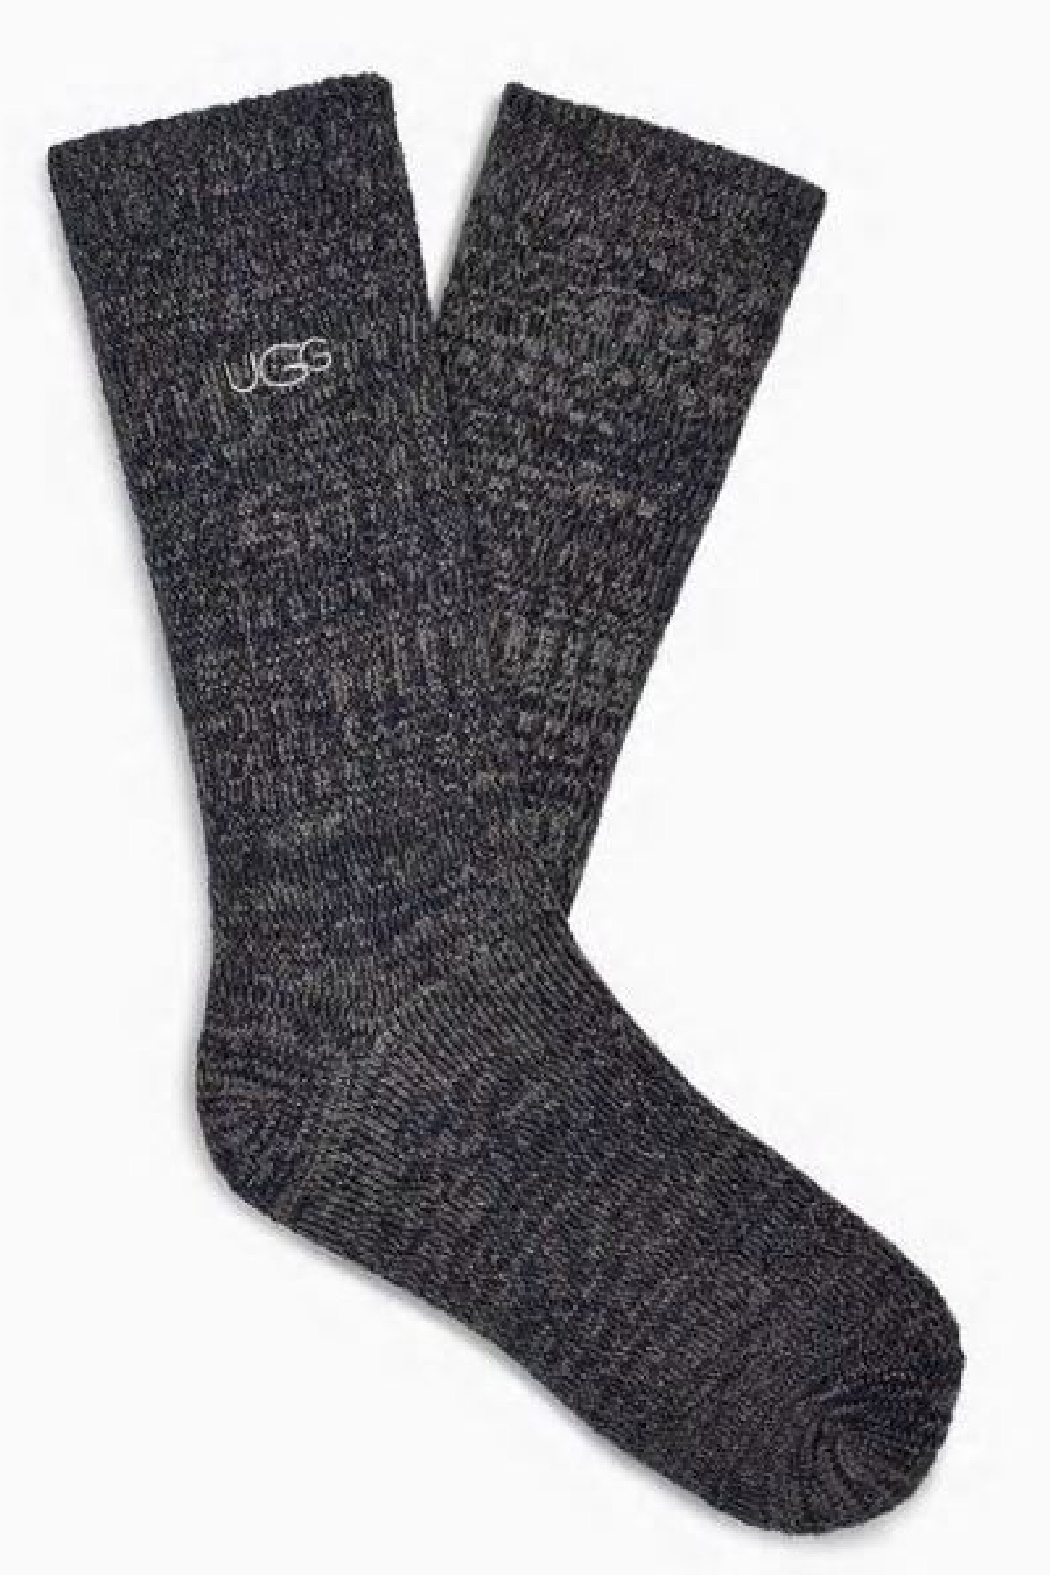 Ugg Trey Rib Men's Crew Socks - Main Image